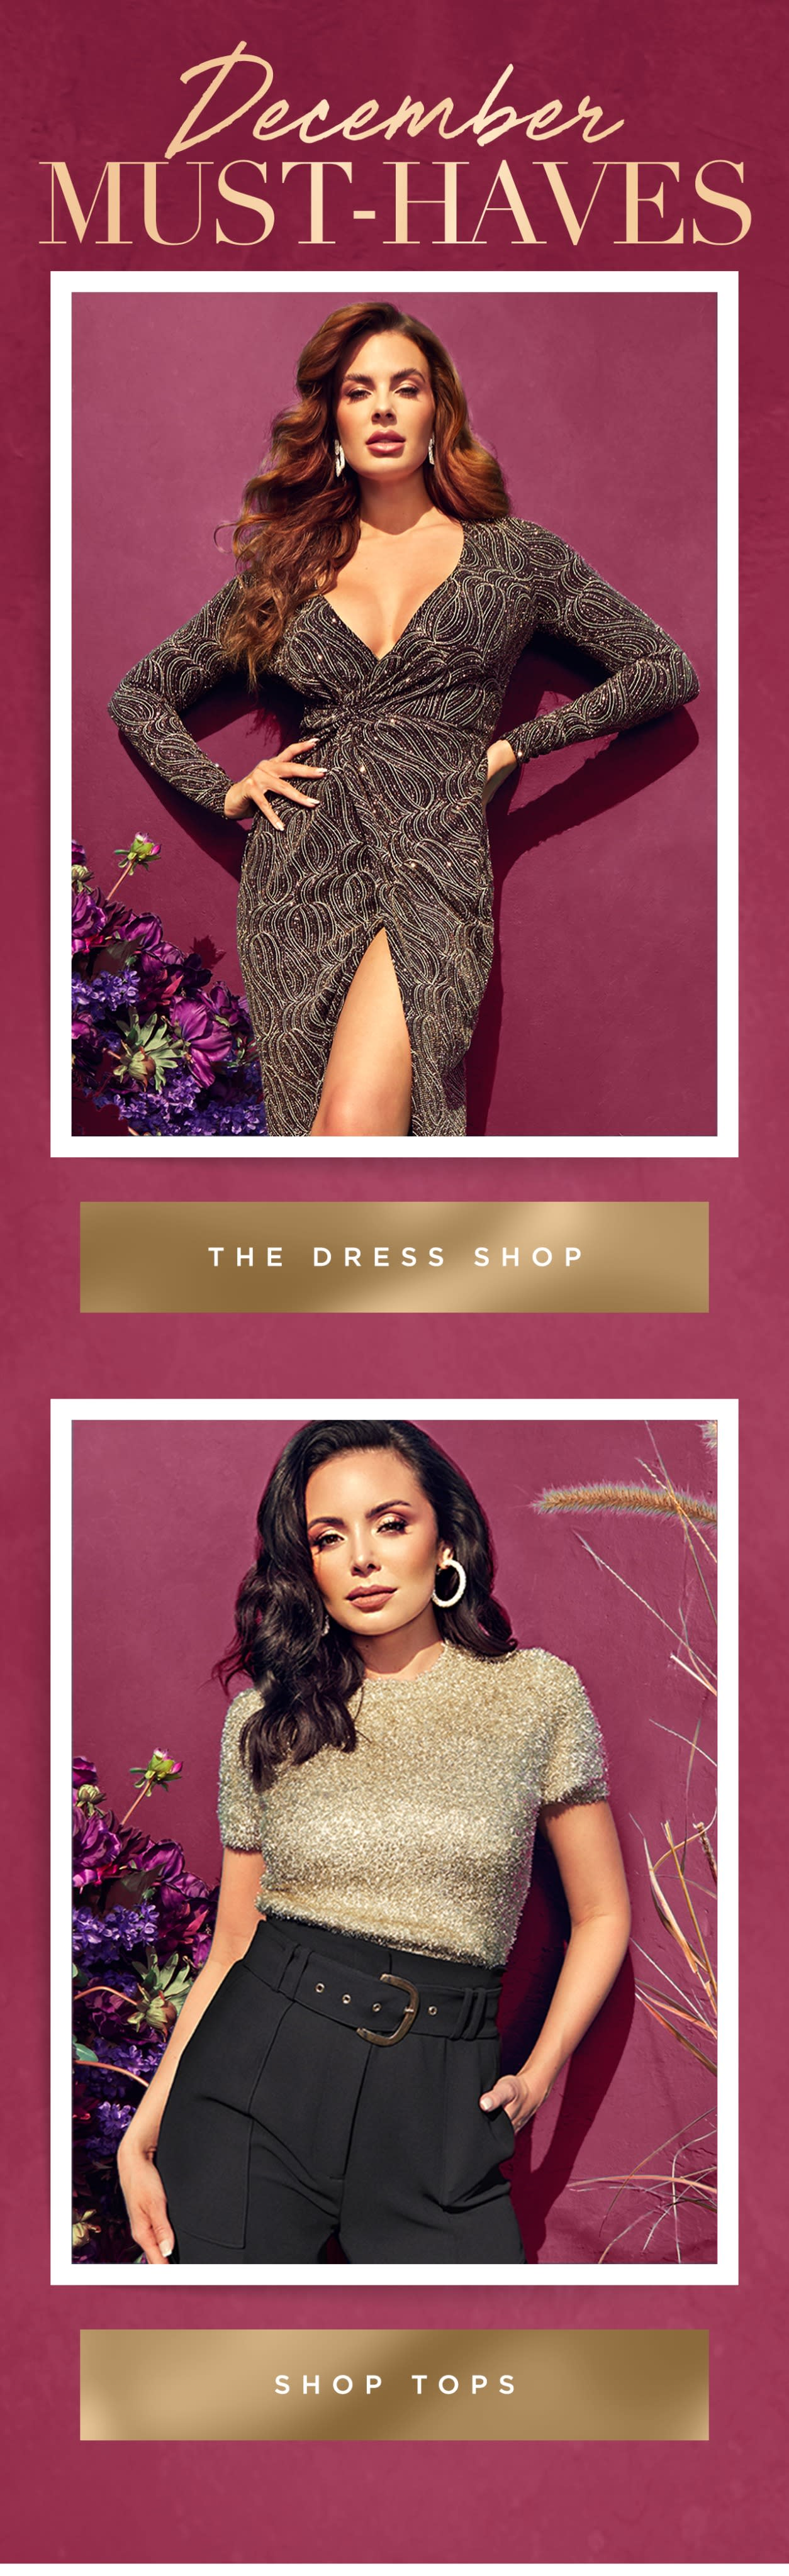 The dress shop